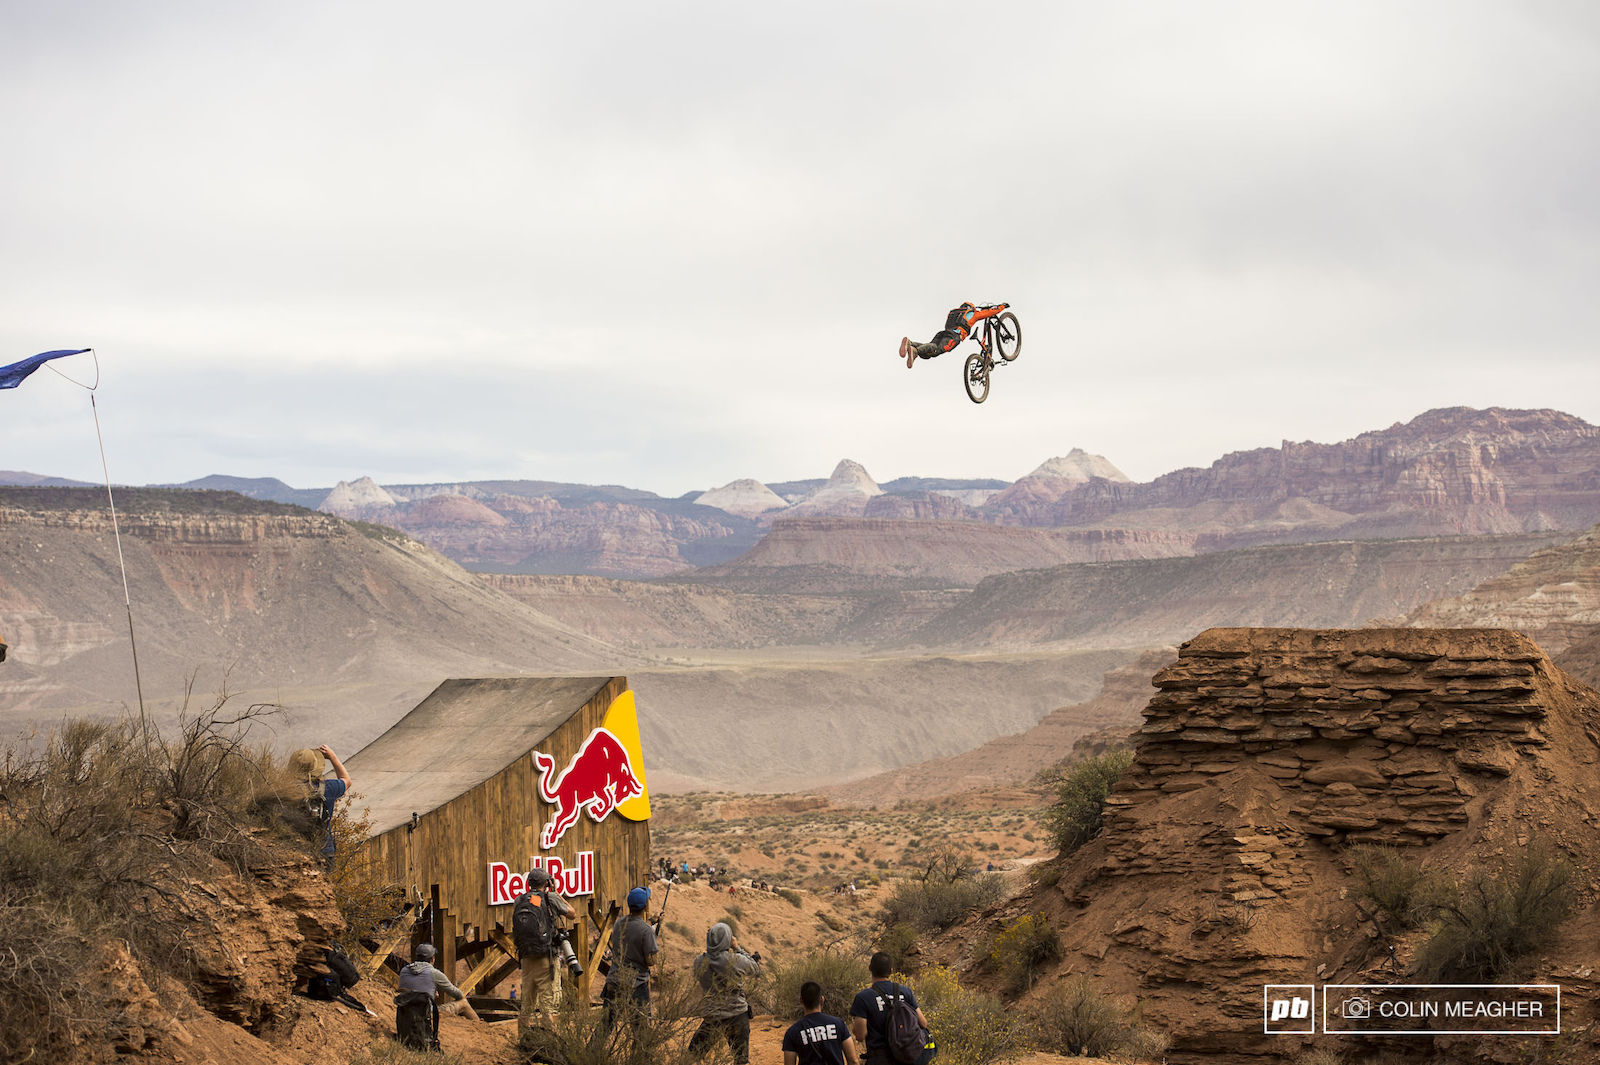 Reynolds going stratospheric across the canyon gap.